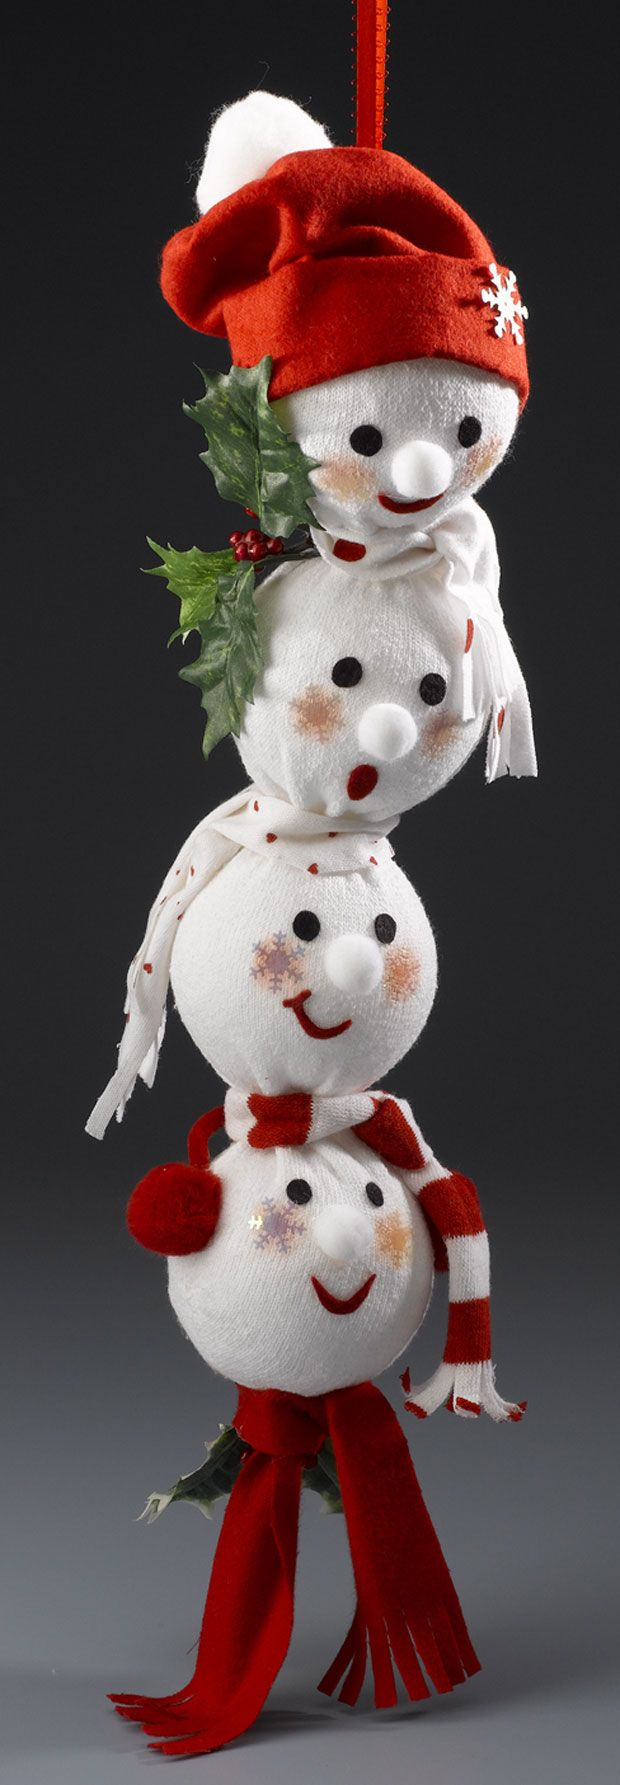 Repurpose socks, stockings & sweaters to make these snowman crafts...